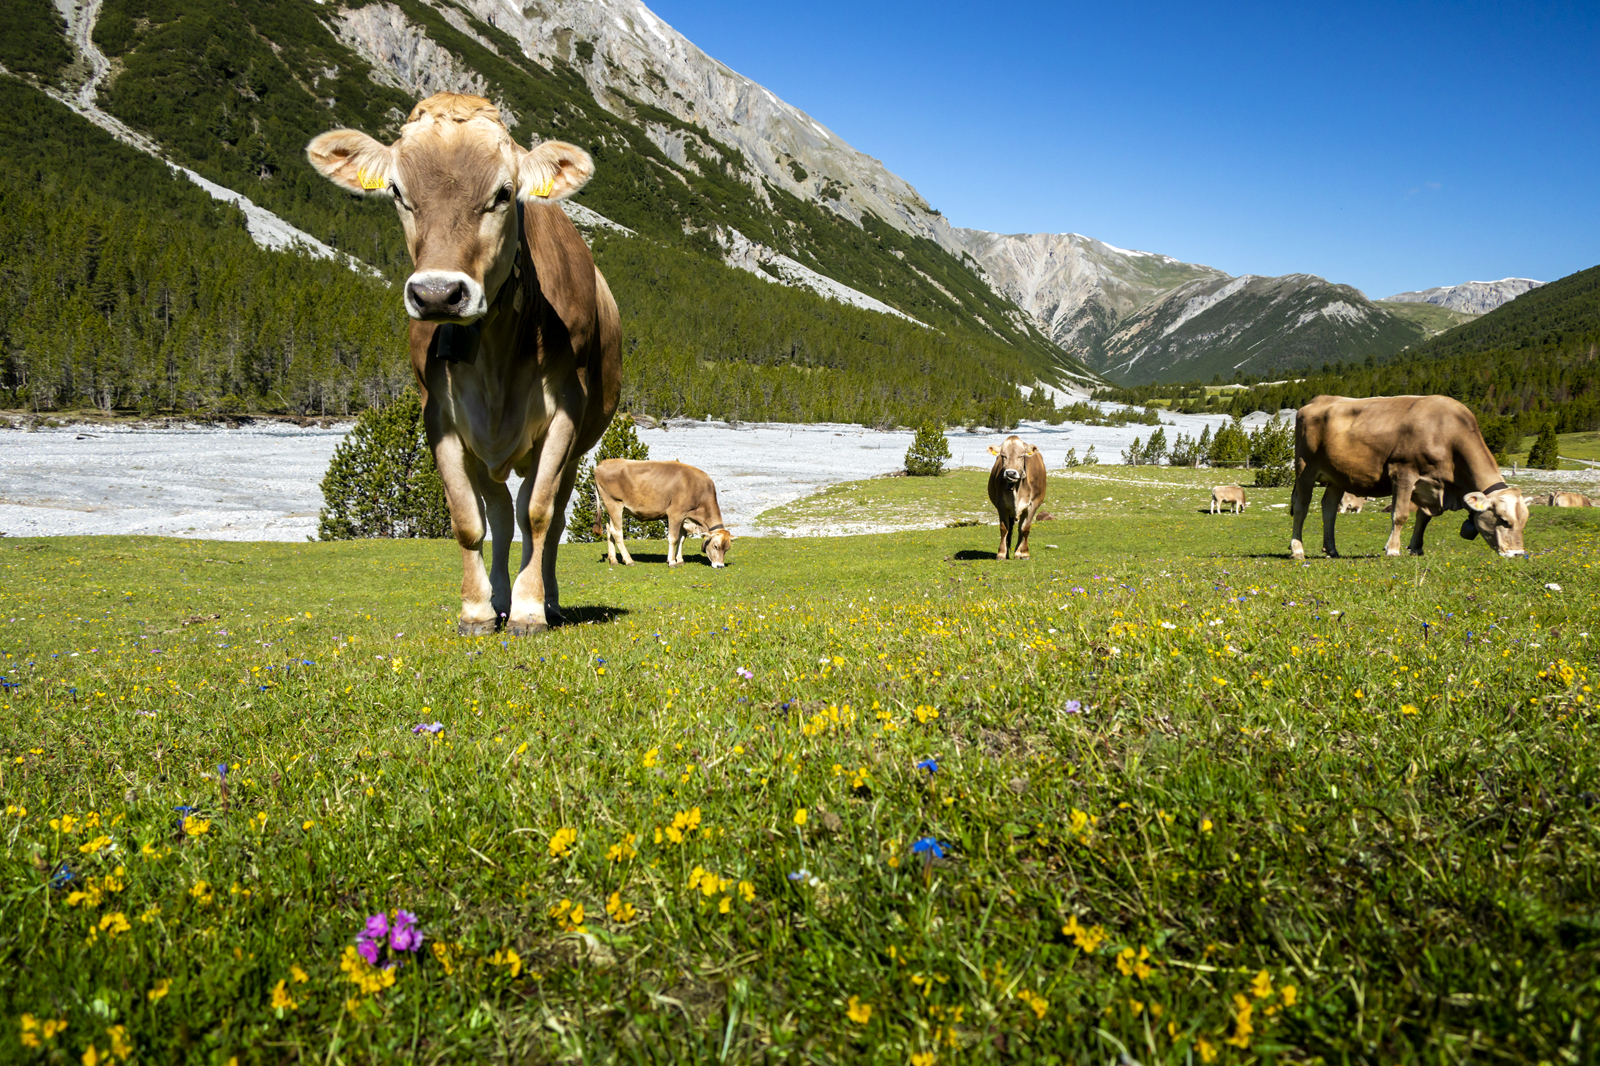 Cows in Val Müstair, Switzerland (A51)